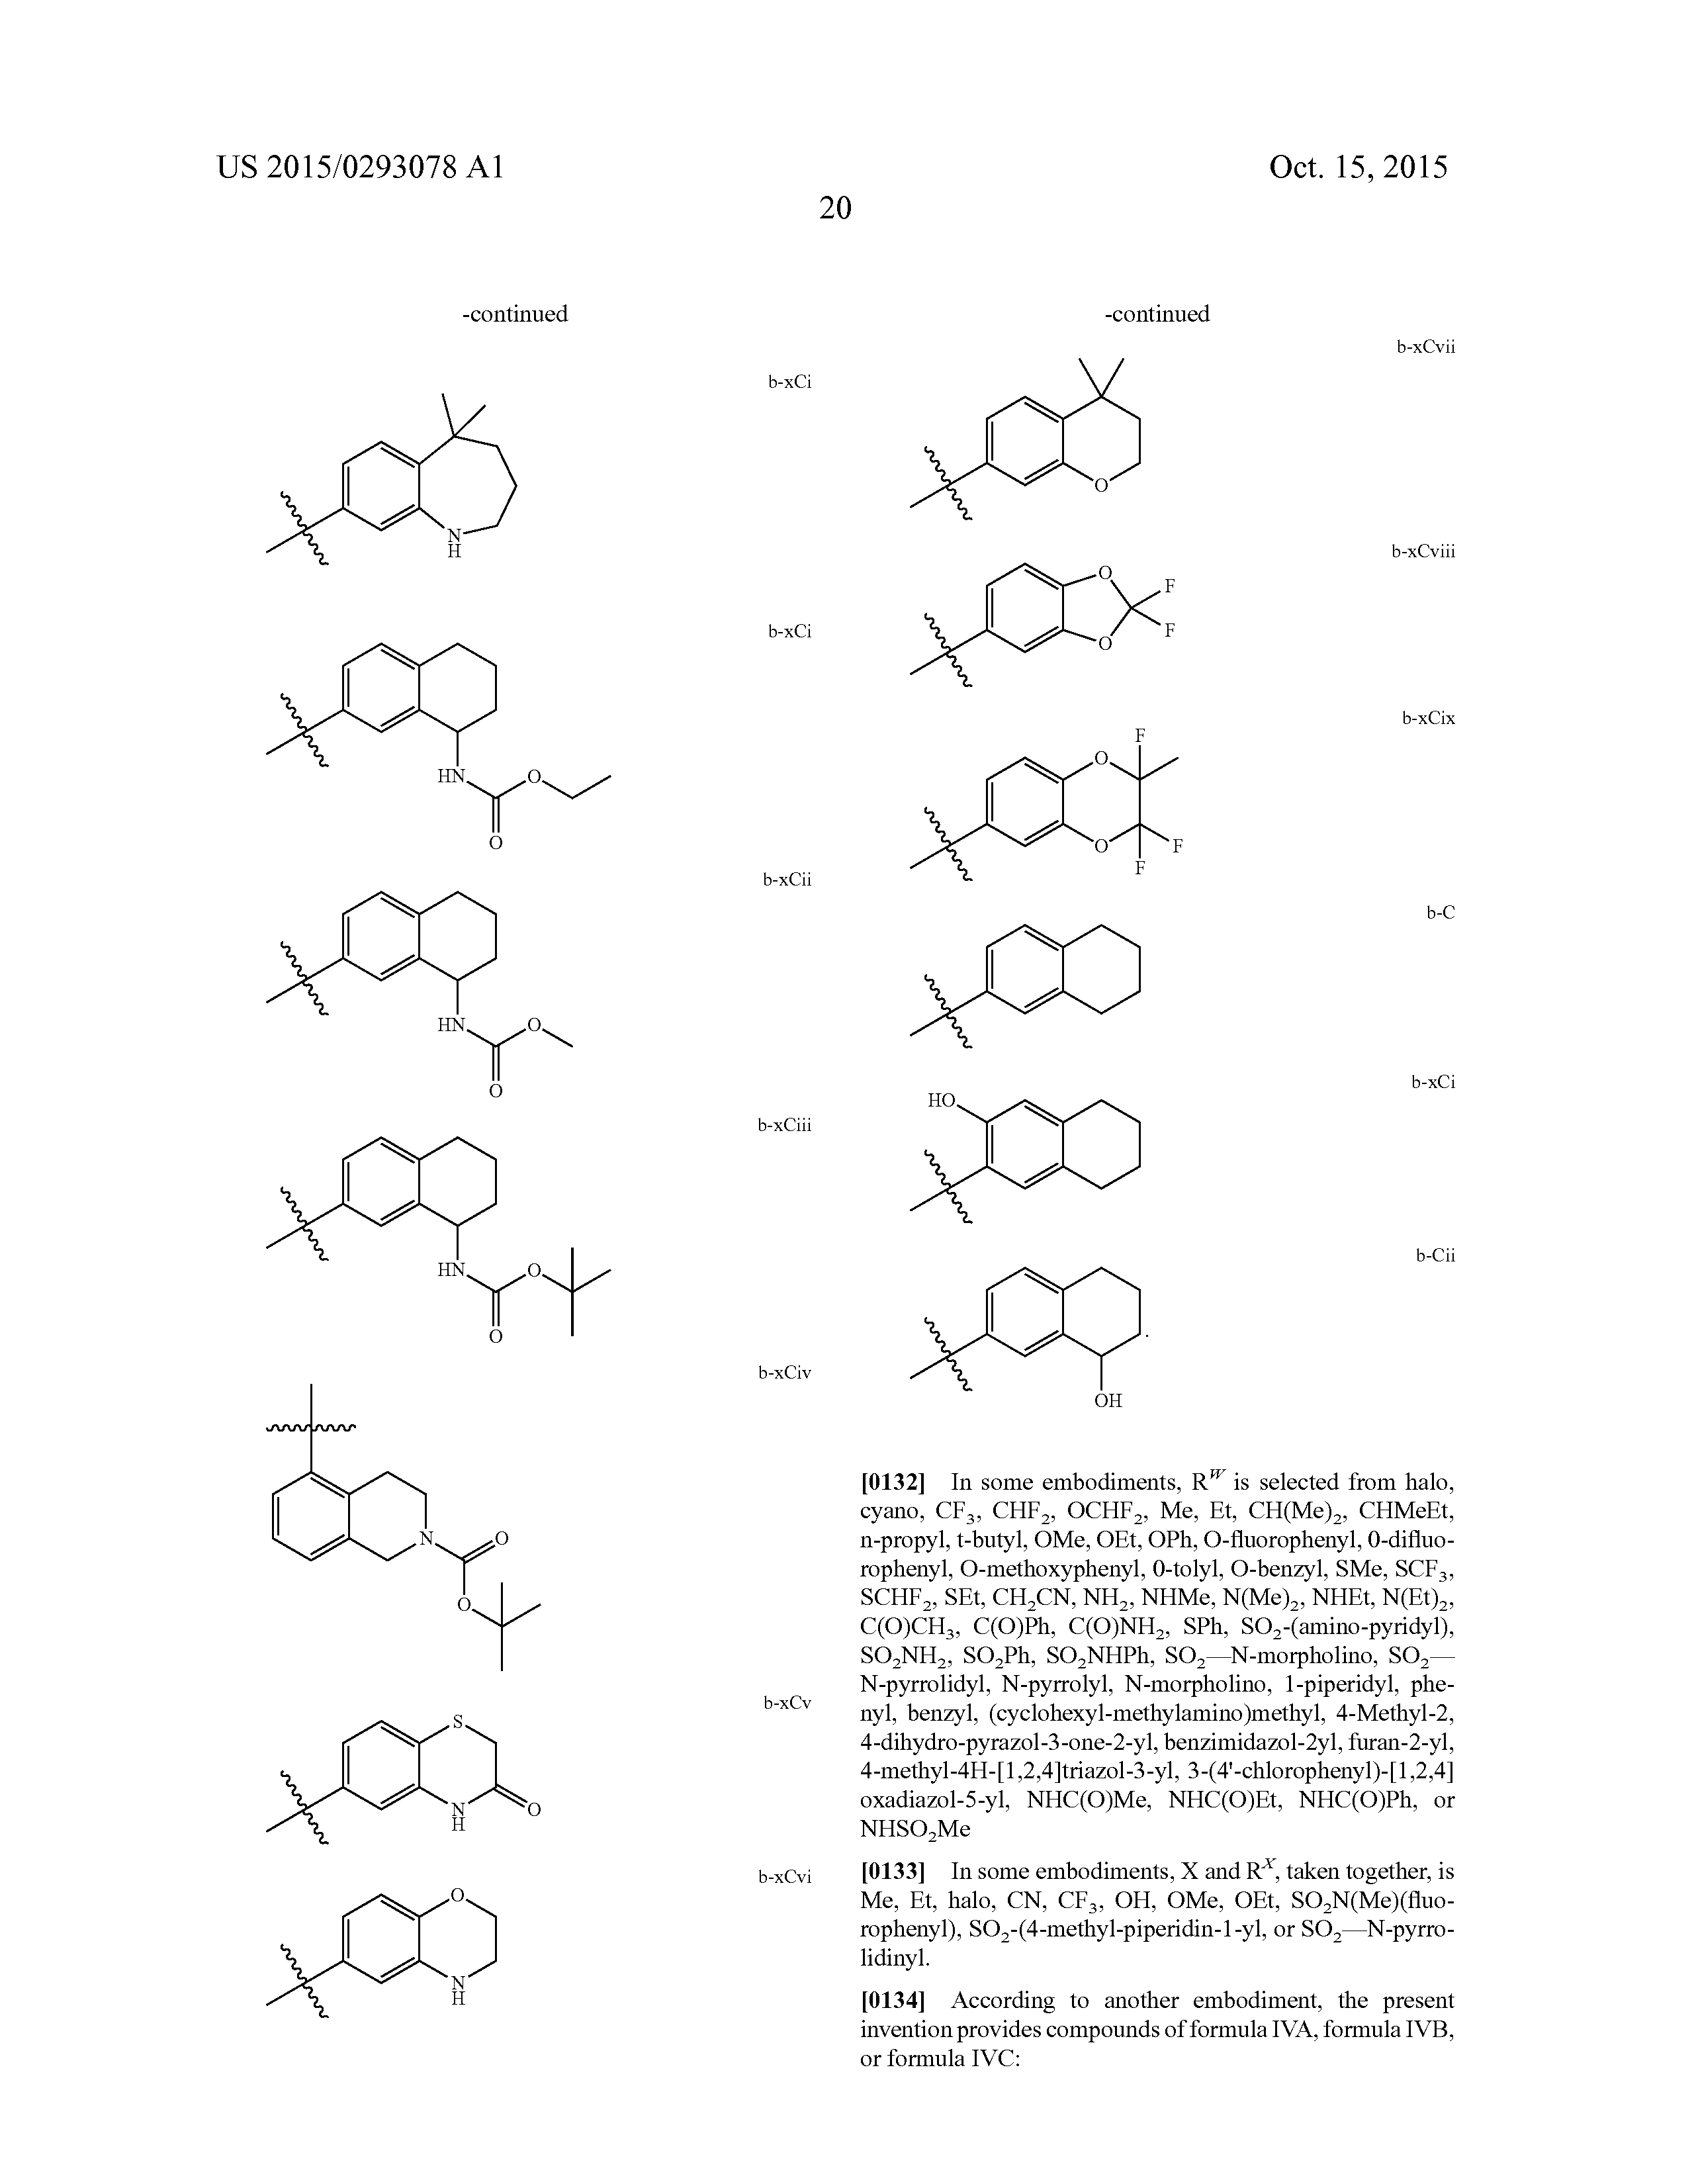 EP 1974212 A1 - Compounds Useful In Cftr Assays And Methods